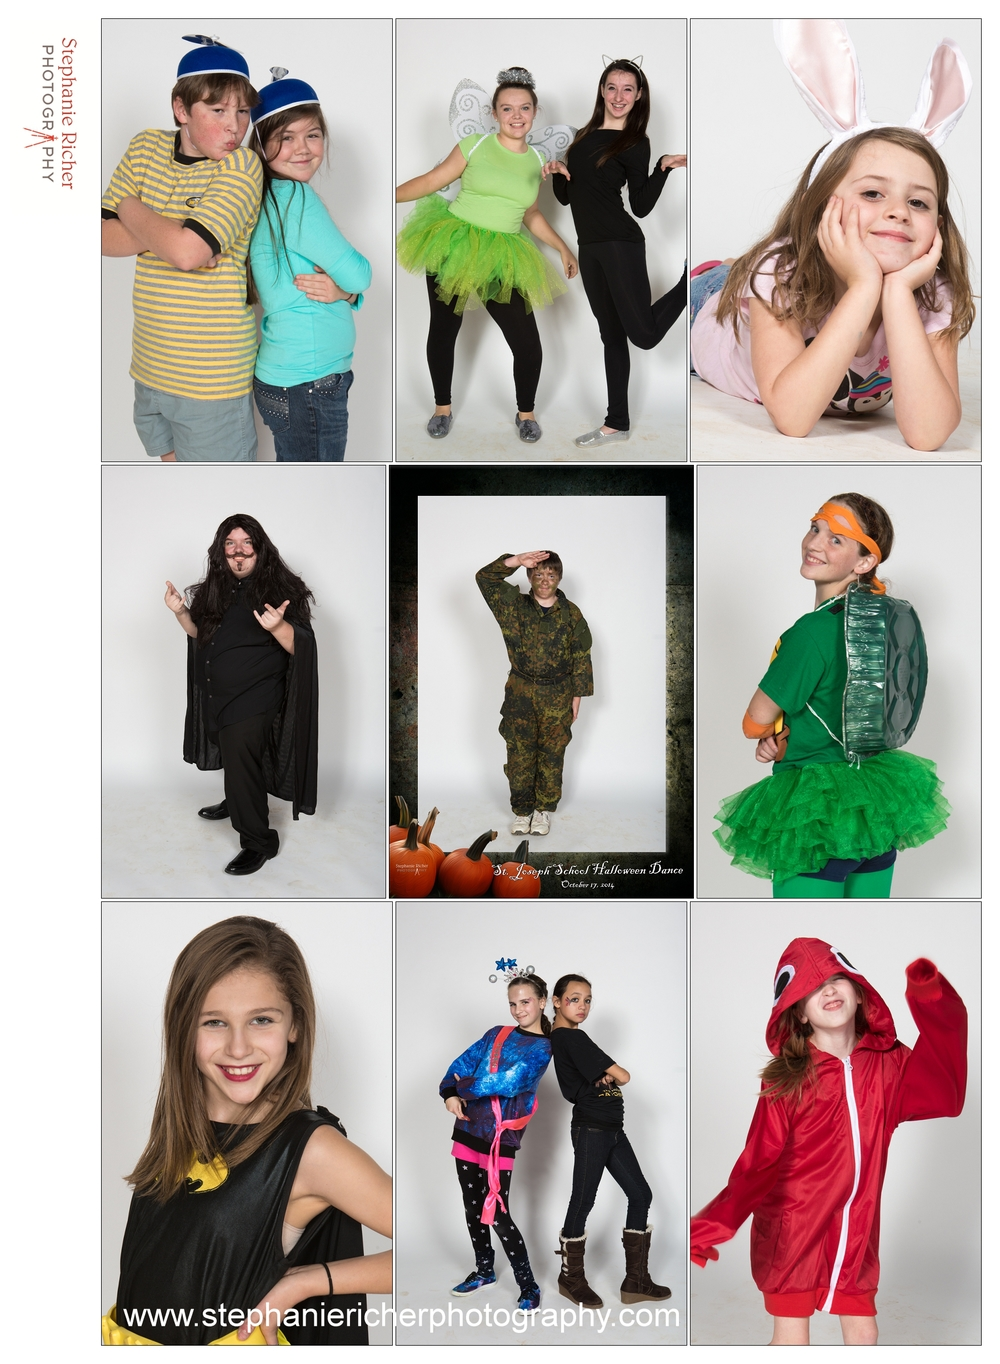 Last week my son's middle school had a Halloween dance.  Now, since I am a GREAT MOM (indeed!), I volunteered to do a photo booth for the evening.